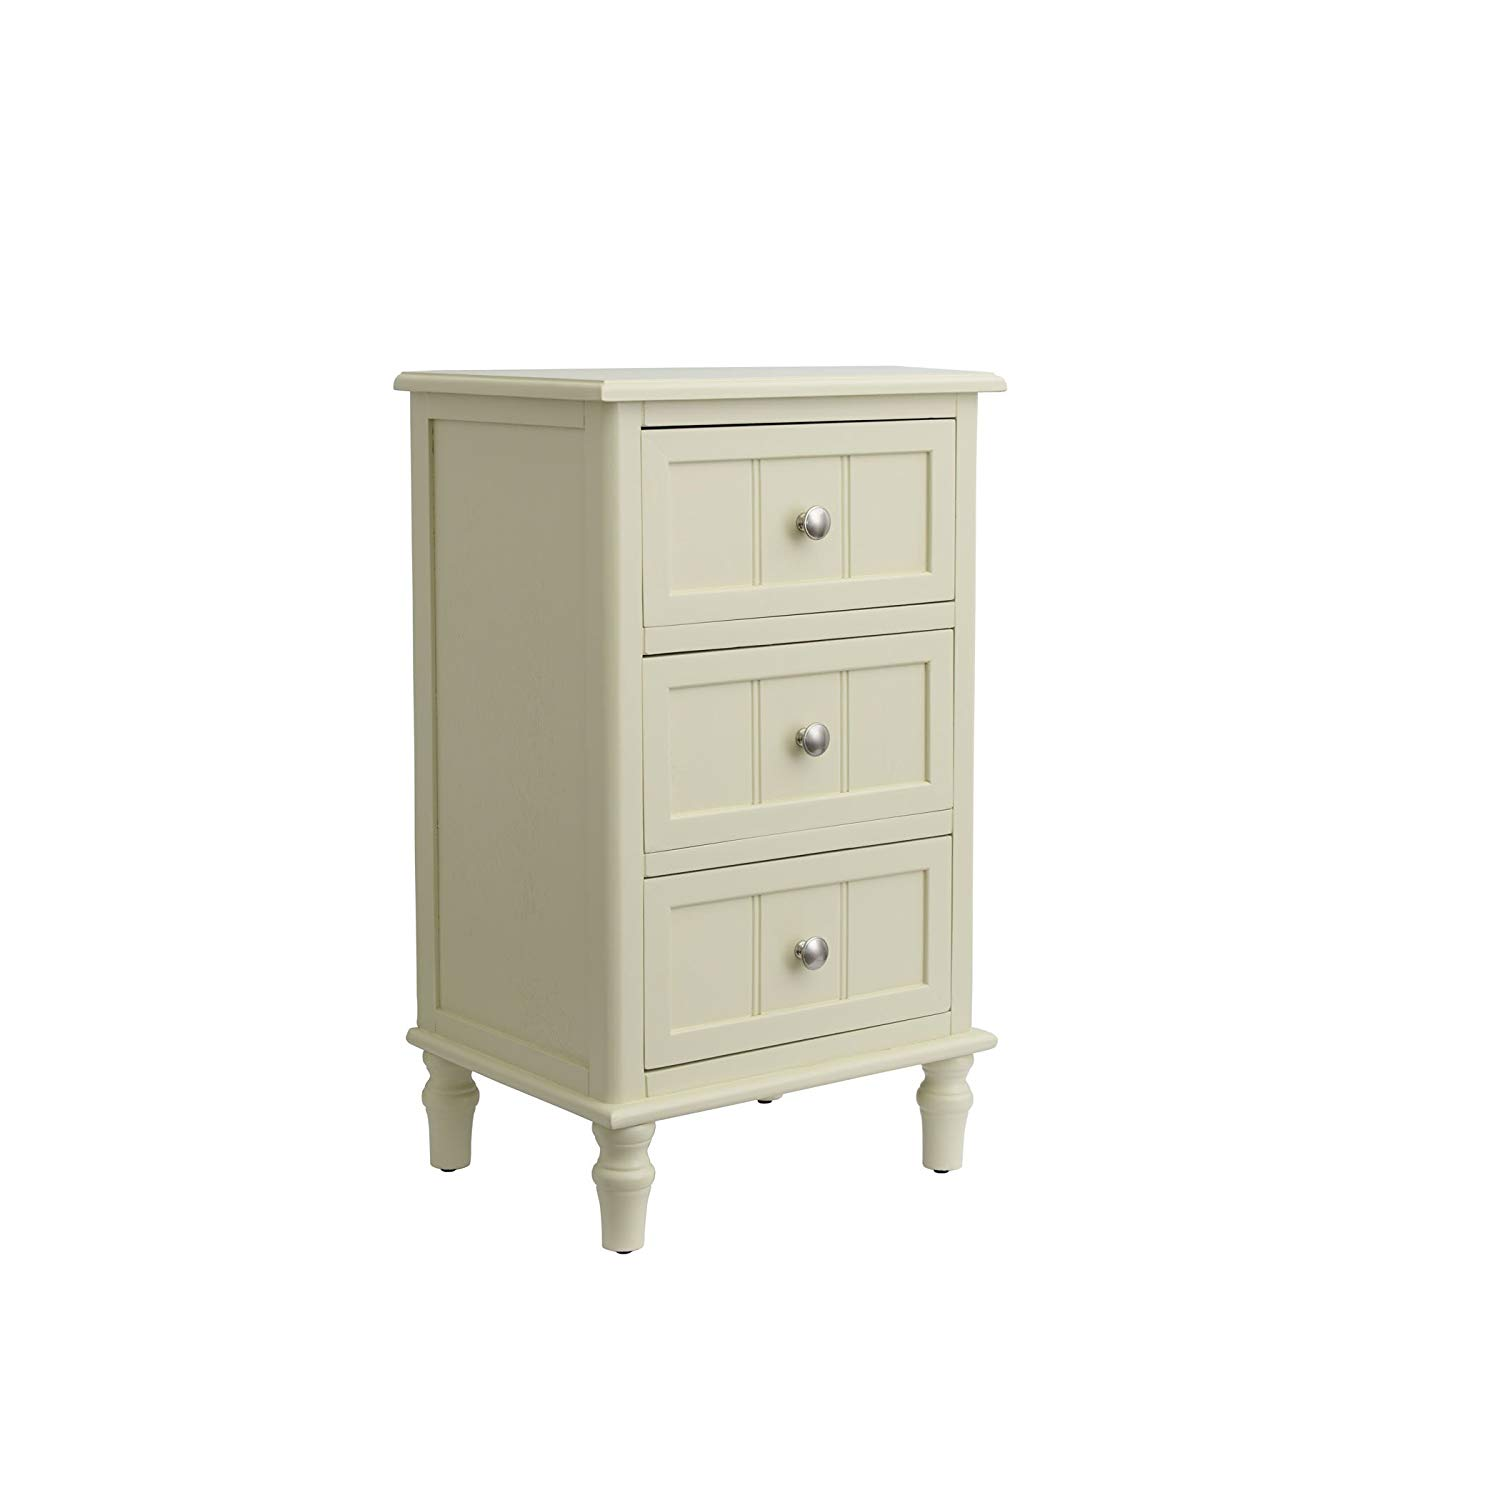 decor therapy buttermilk finish end table three drawer accent kitchen dining ikea closet storage bedroom chairs mosaic top outdoor screen porch furniture trestle bench seat dorm